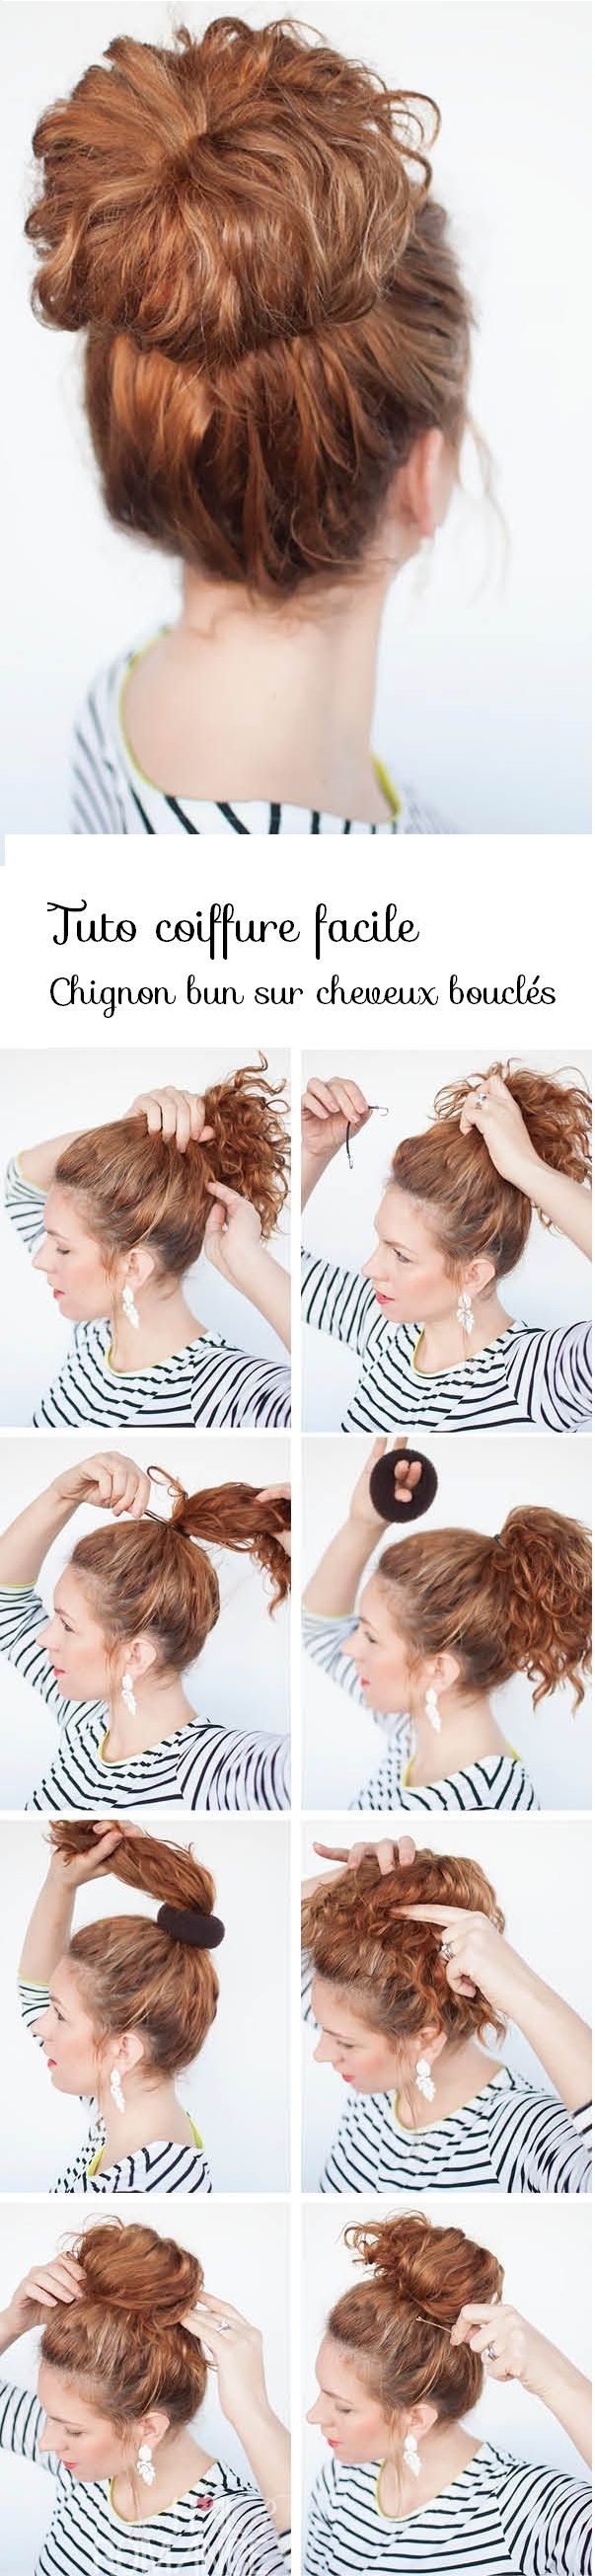 Fabuleux 310 best tuto de coiffure images on Pinterest | Hairstyles, Hair  RV15